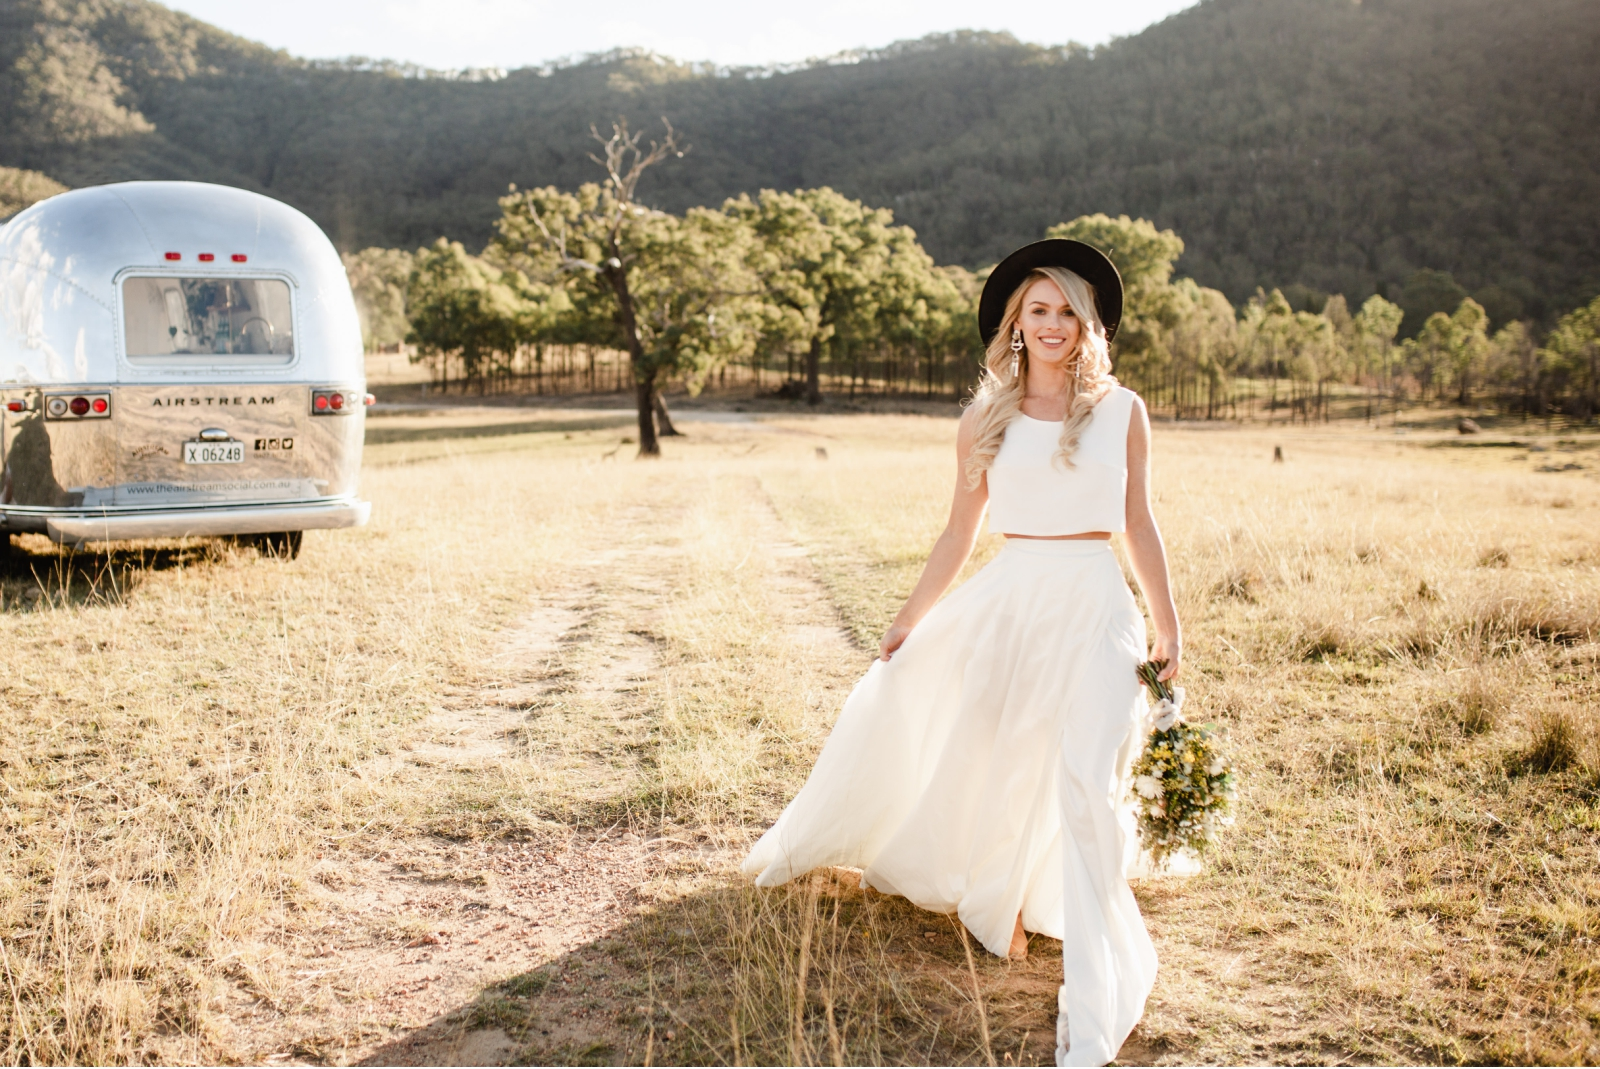 hunter-valley-wedding-planner-styled-shoot-the-airstream-social-broke-nsw-10